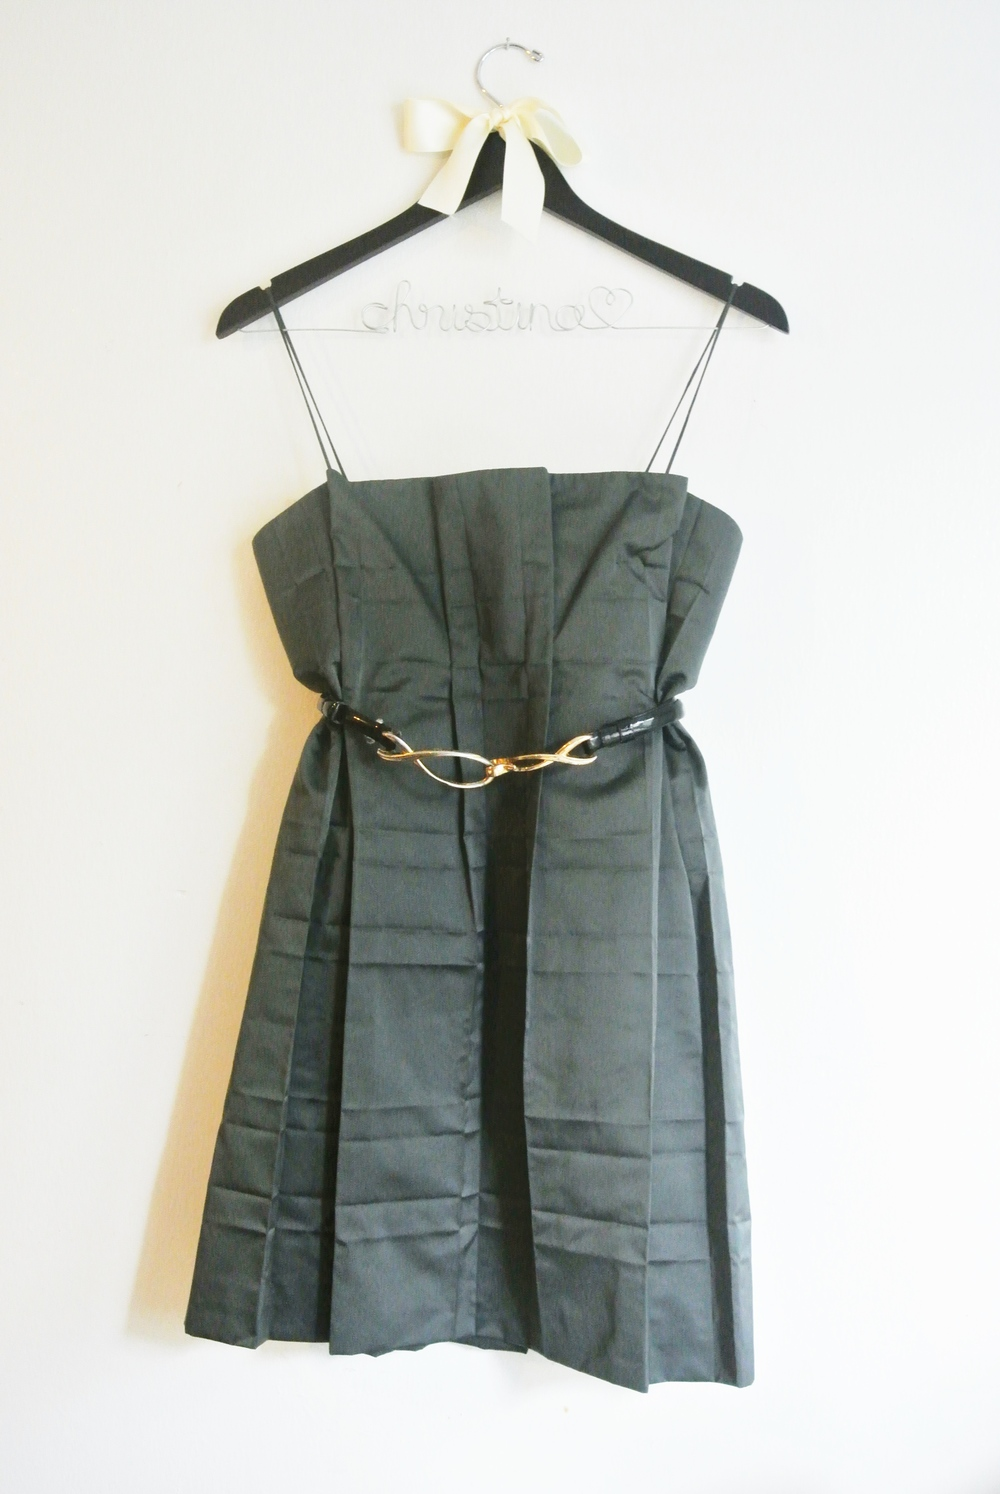 Marc Jacobs pleated LBD (styled with Express belt)